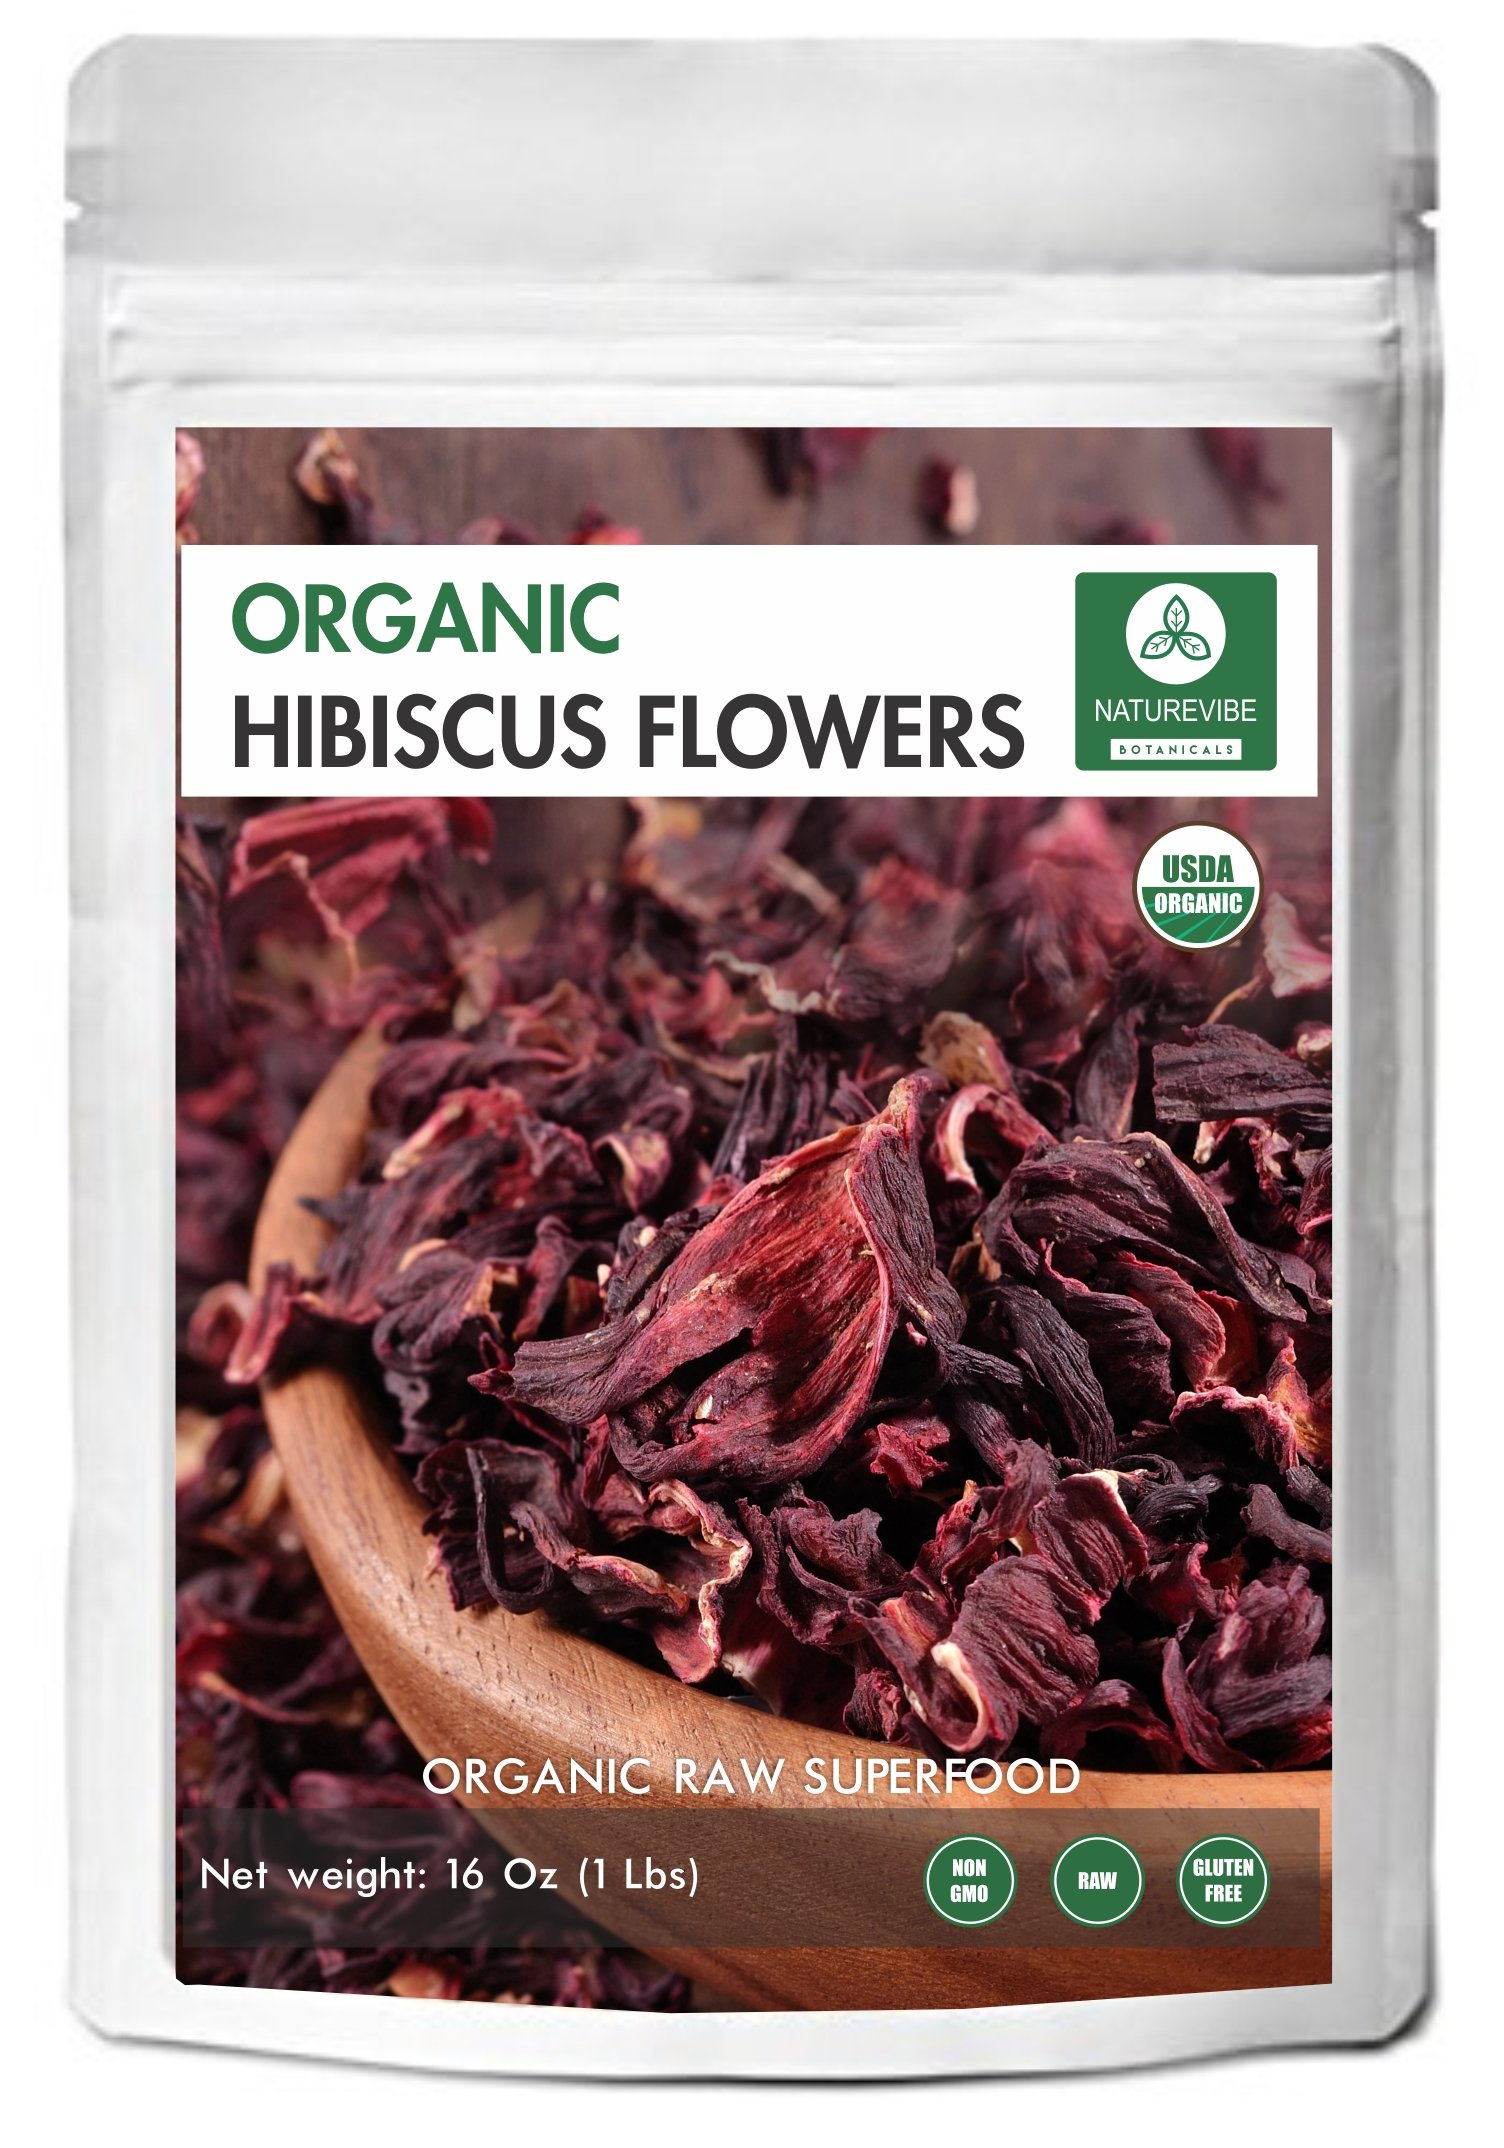 Organic Hibiscus Flowers - 16oz Resealable Bag - Indian Origin - by Naturevibe Botanicals (Packaging may vary)